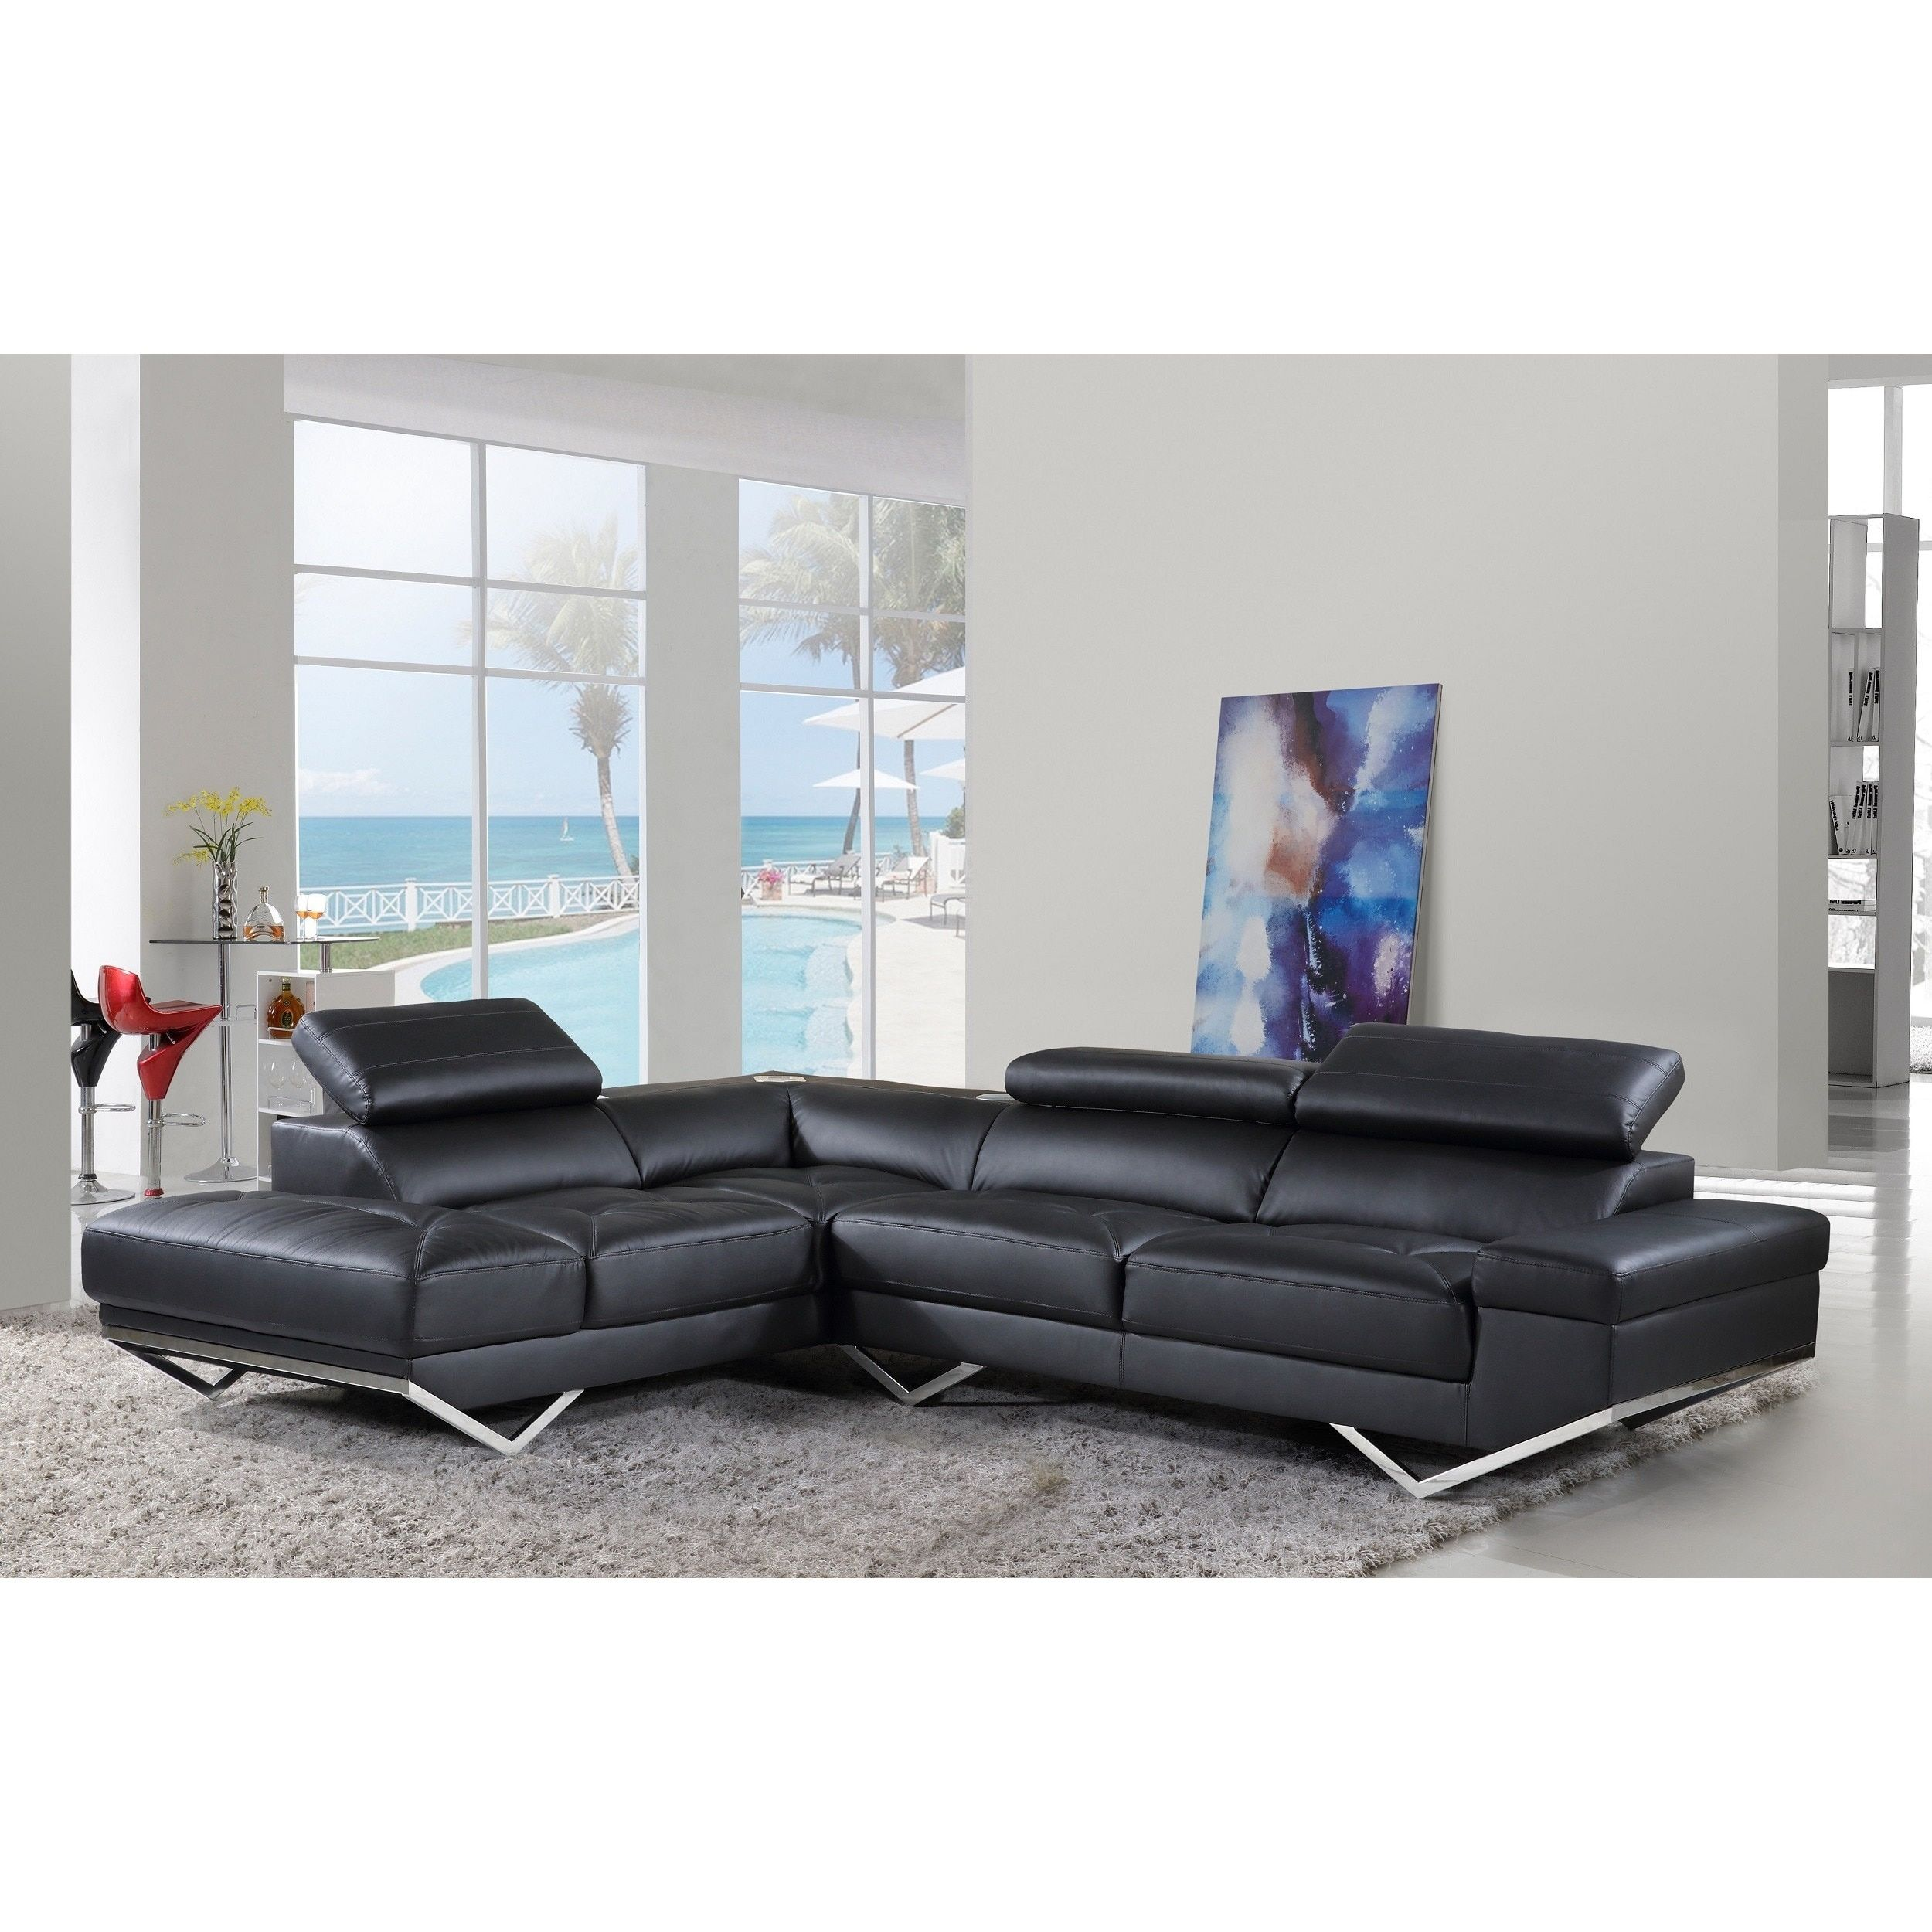 Iliana Leather Contemporary With Wireless Bluetooth Speaker Sectional Sofa Set Sectional Sofa Sofa Set Furniture